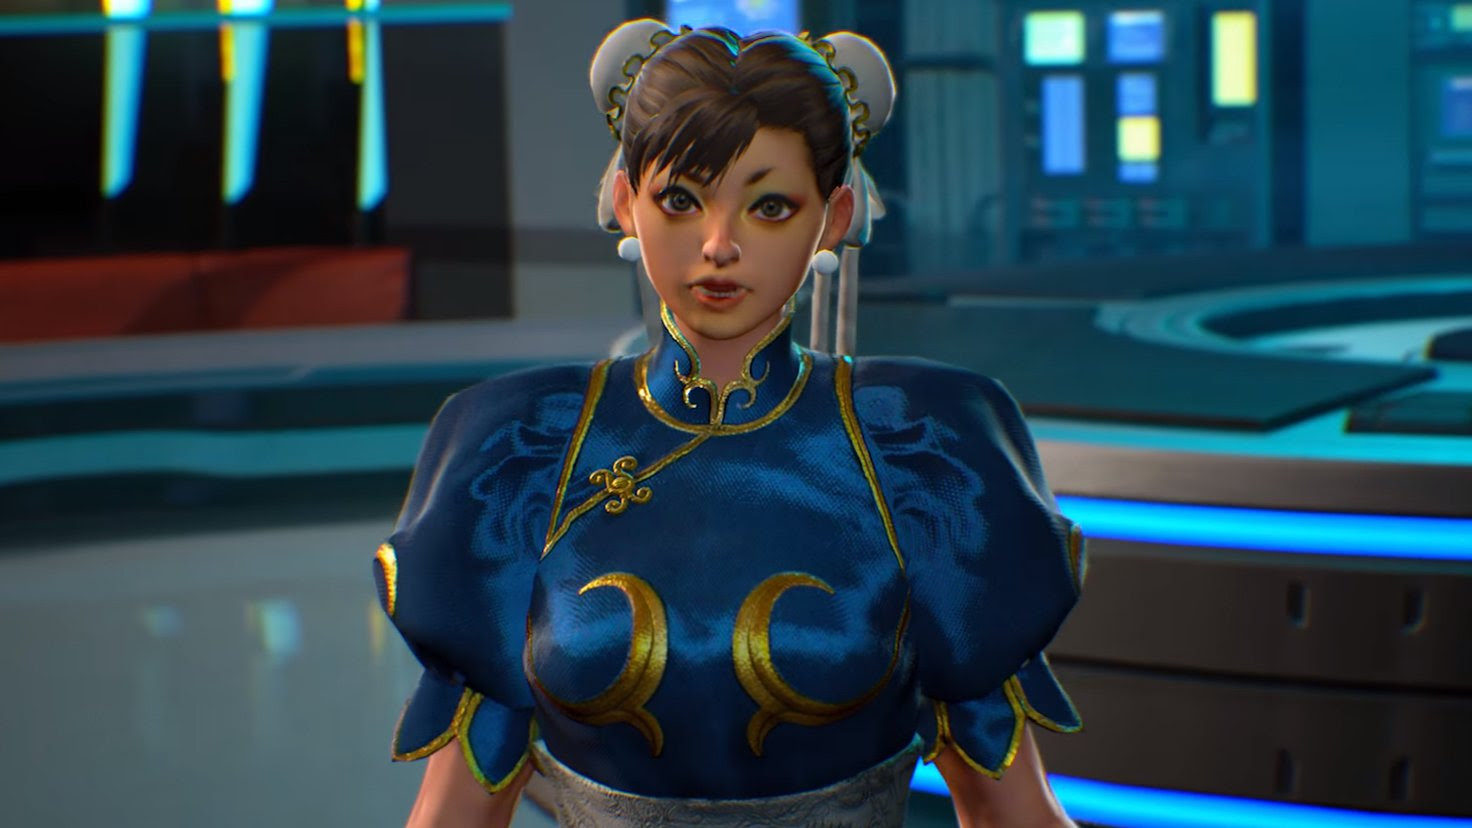 Capcom is fixing Chun-Li's face in Marvel vs. Capcom Infinite with a day-one patch screenshot